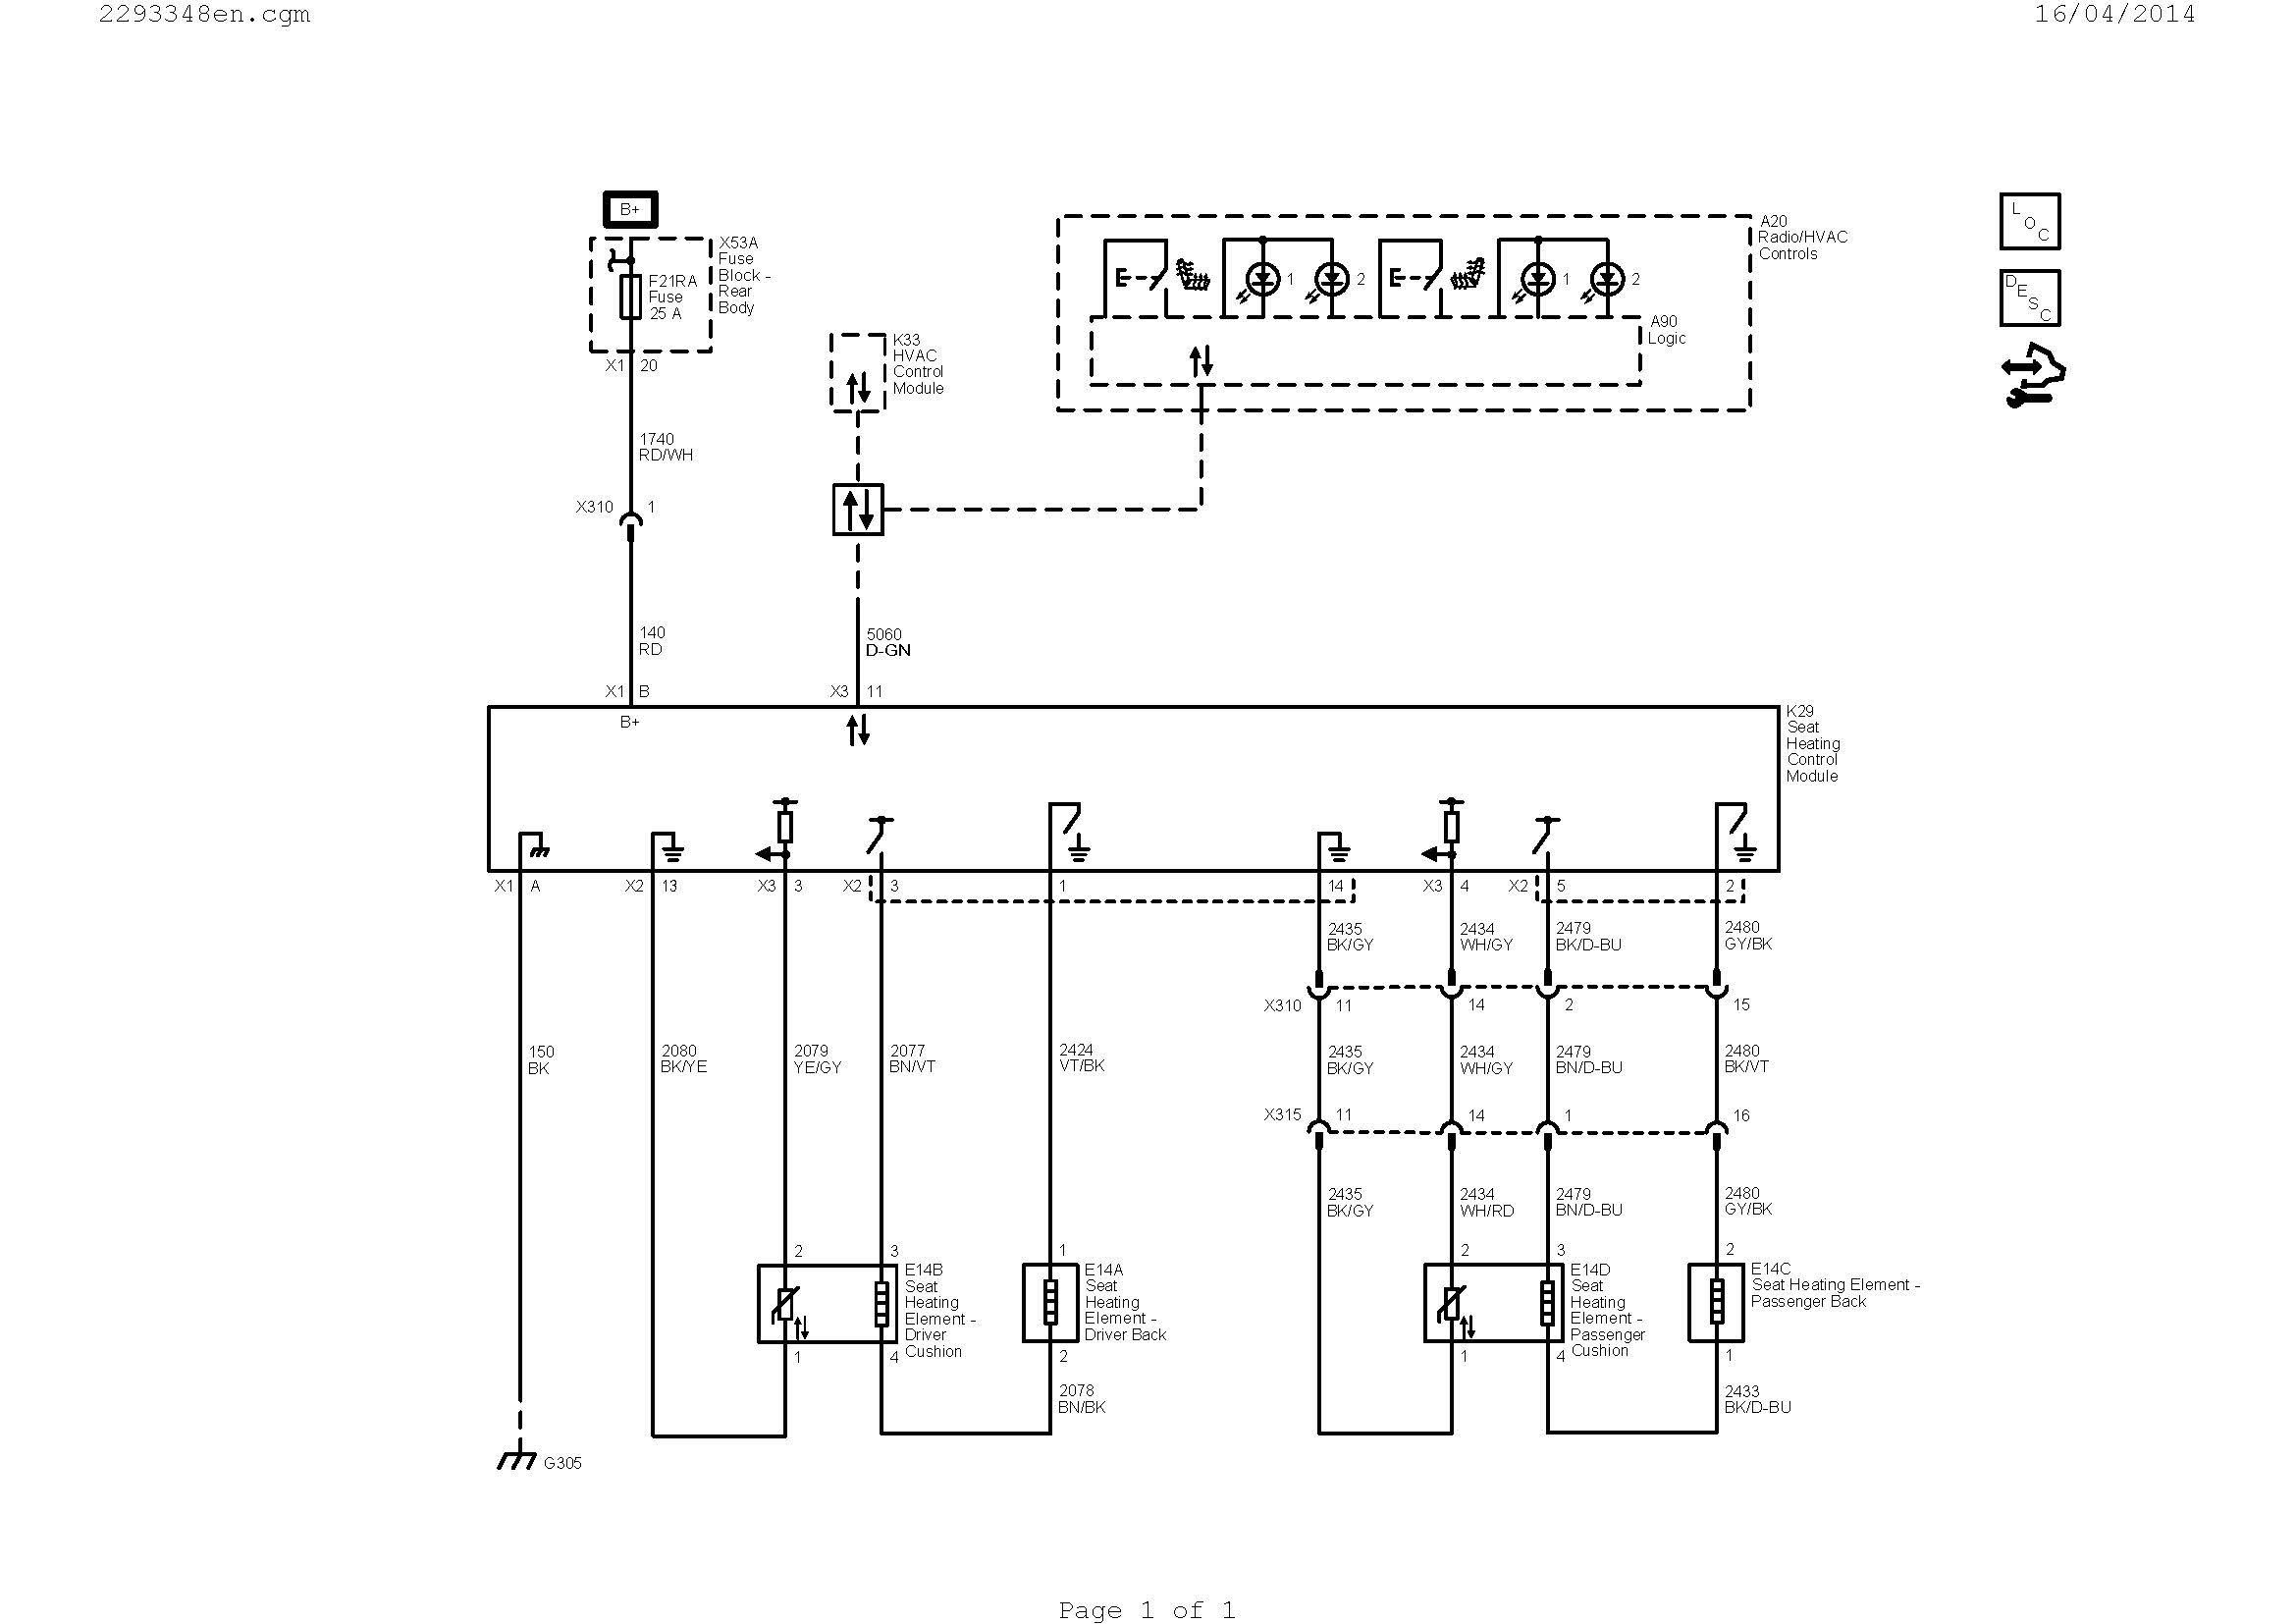 heat tape wiring diagram Collection-central boiler thermostat wiring diagram Download Wiring Diagrams For Central Heating Refrence Hvac Diagram Best 15-m